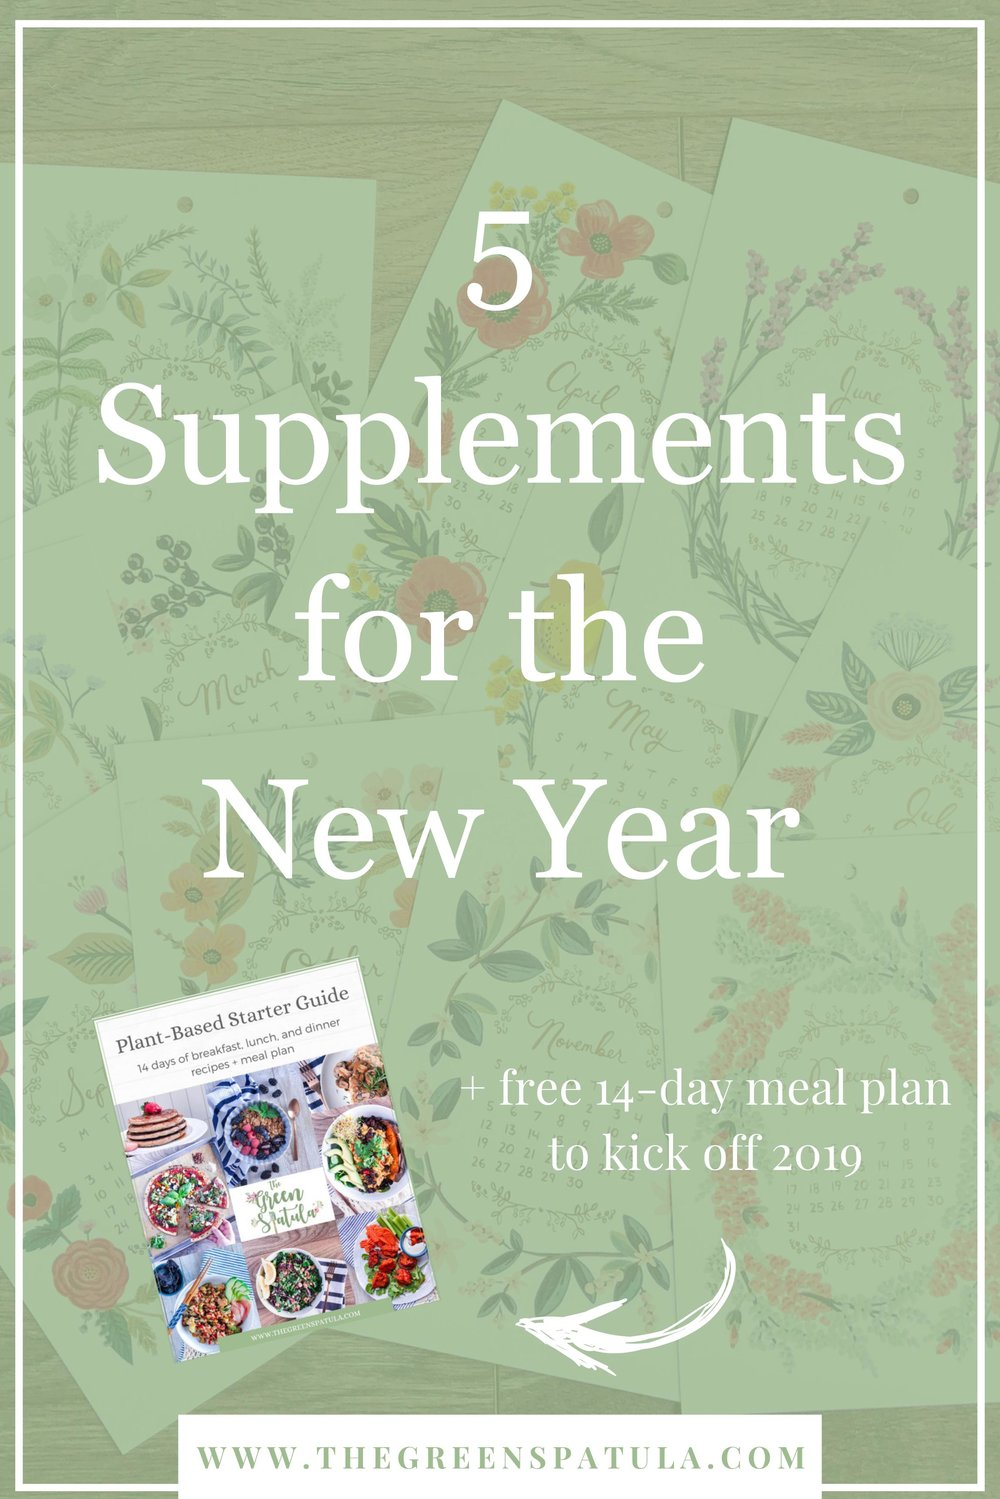 5 Supplements for the New Year - Only 8% of us will success in achieving our resolutions. To give you an edge, this list has the top 5 supplements you need to reach your weight and wellness goals. Plus, download a FREE 14-day plant-based meal plan with 30+ recipes to kick off 2019 with a bang! #health #resolutions #newyear #vegan #plantbased #mealplan #weightloss #cleaneating